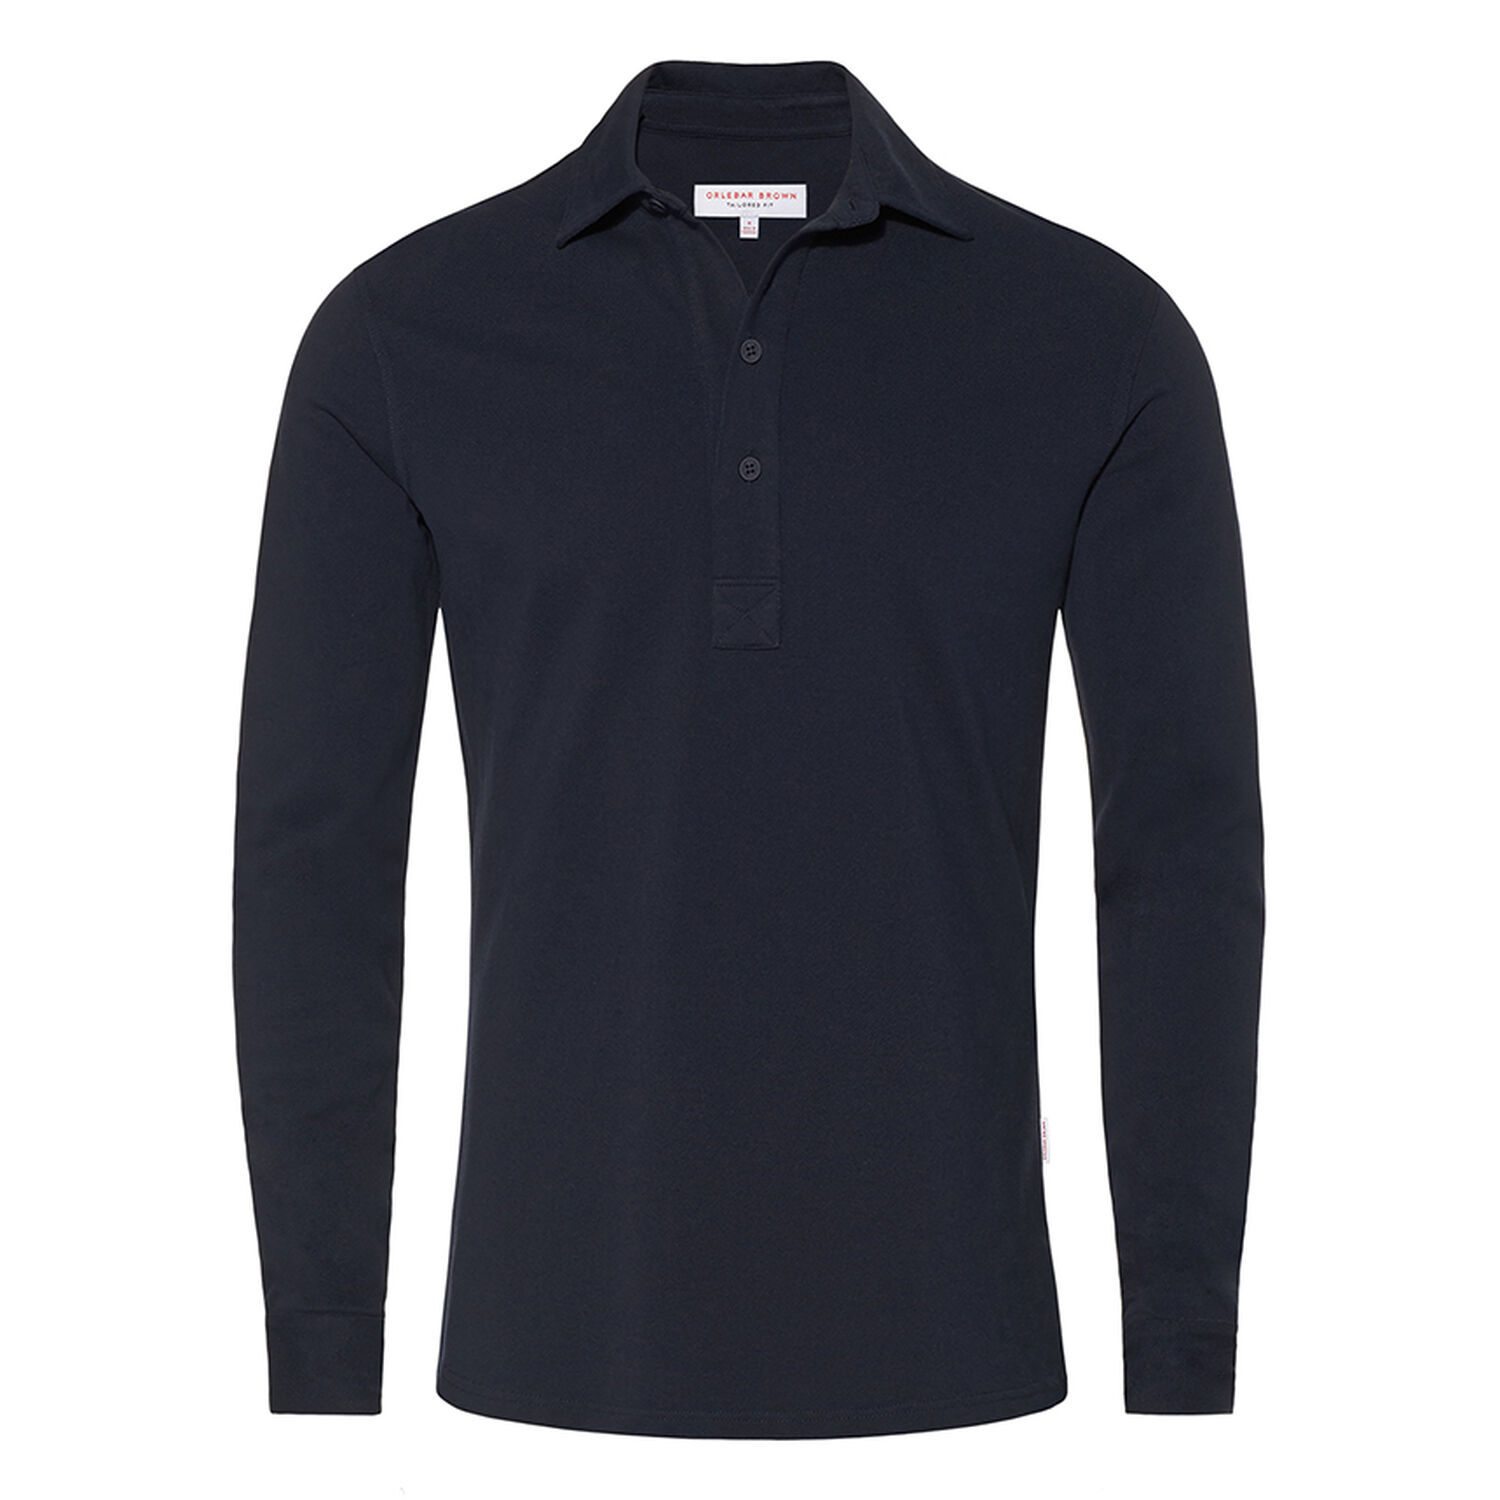 Sebastian Tailored Ls Navy Pique Tailored Polo Orlebar Brown